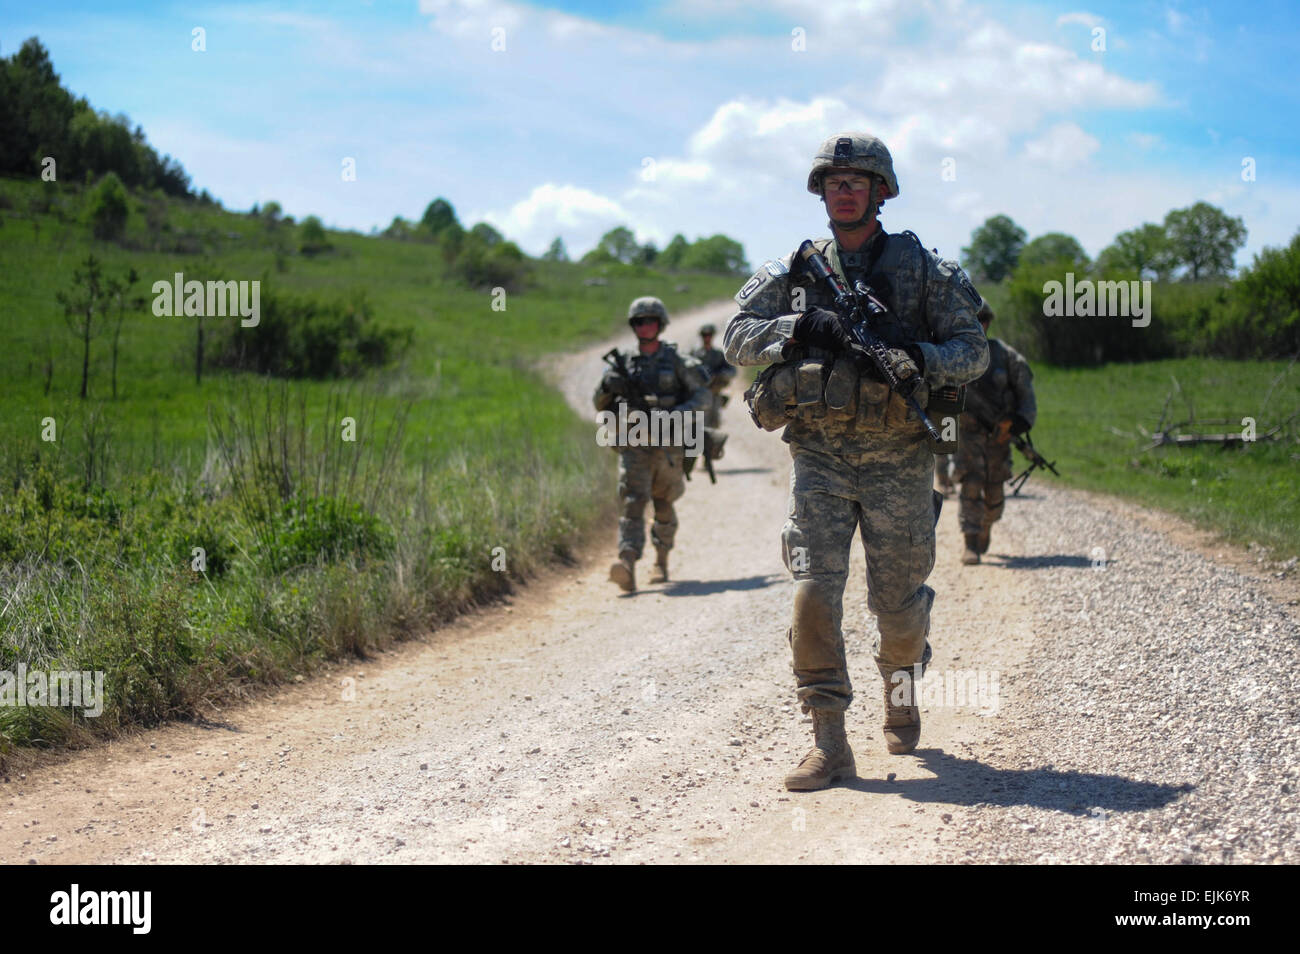 U.S. Army Staff Sgt. Nathan A. Harrison along with paratroopers assigned to Battle Company, 2nd Battalion, 503rd Stock Photo